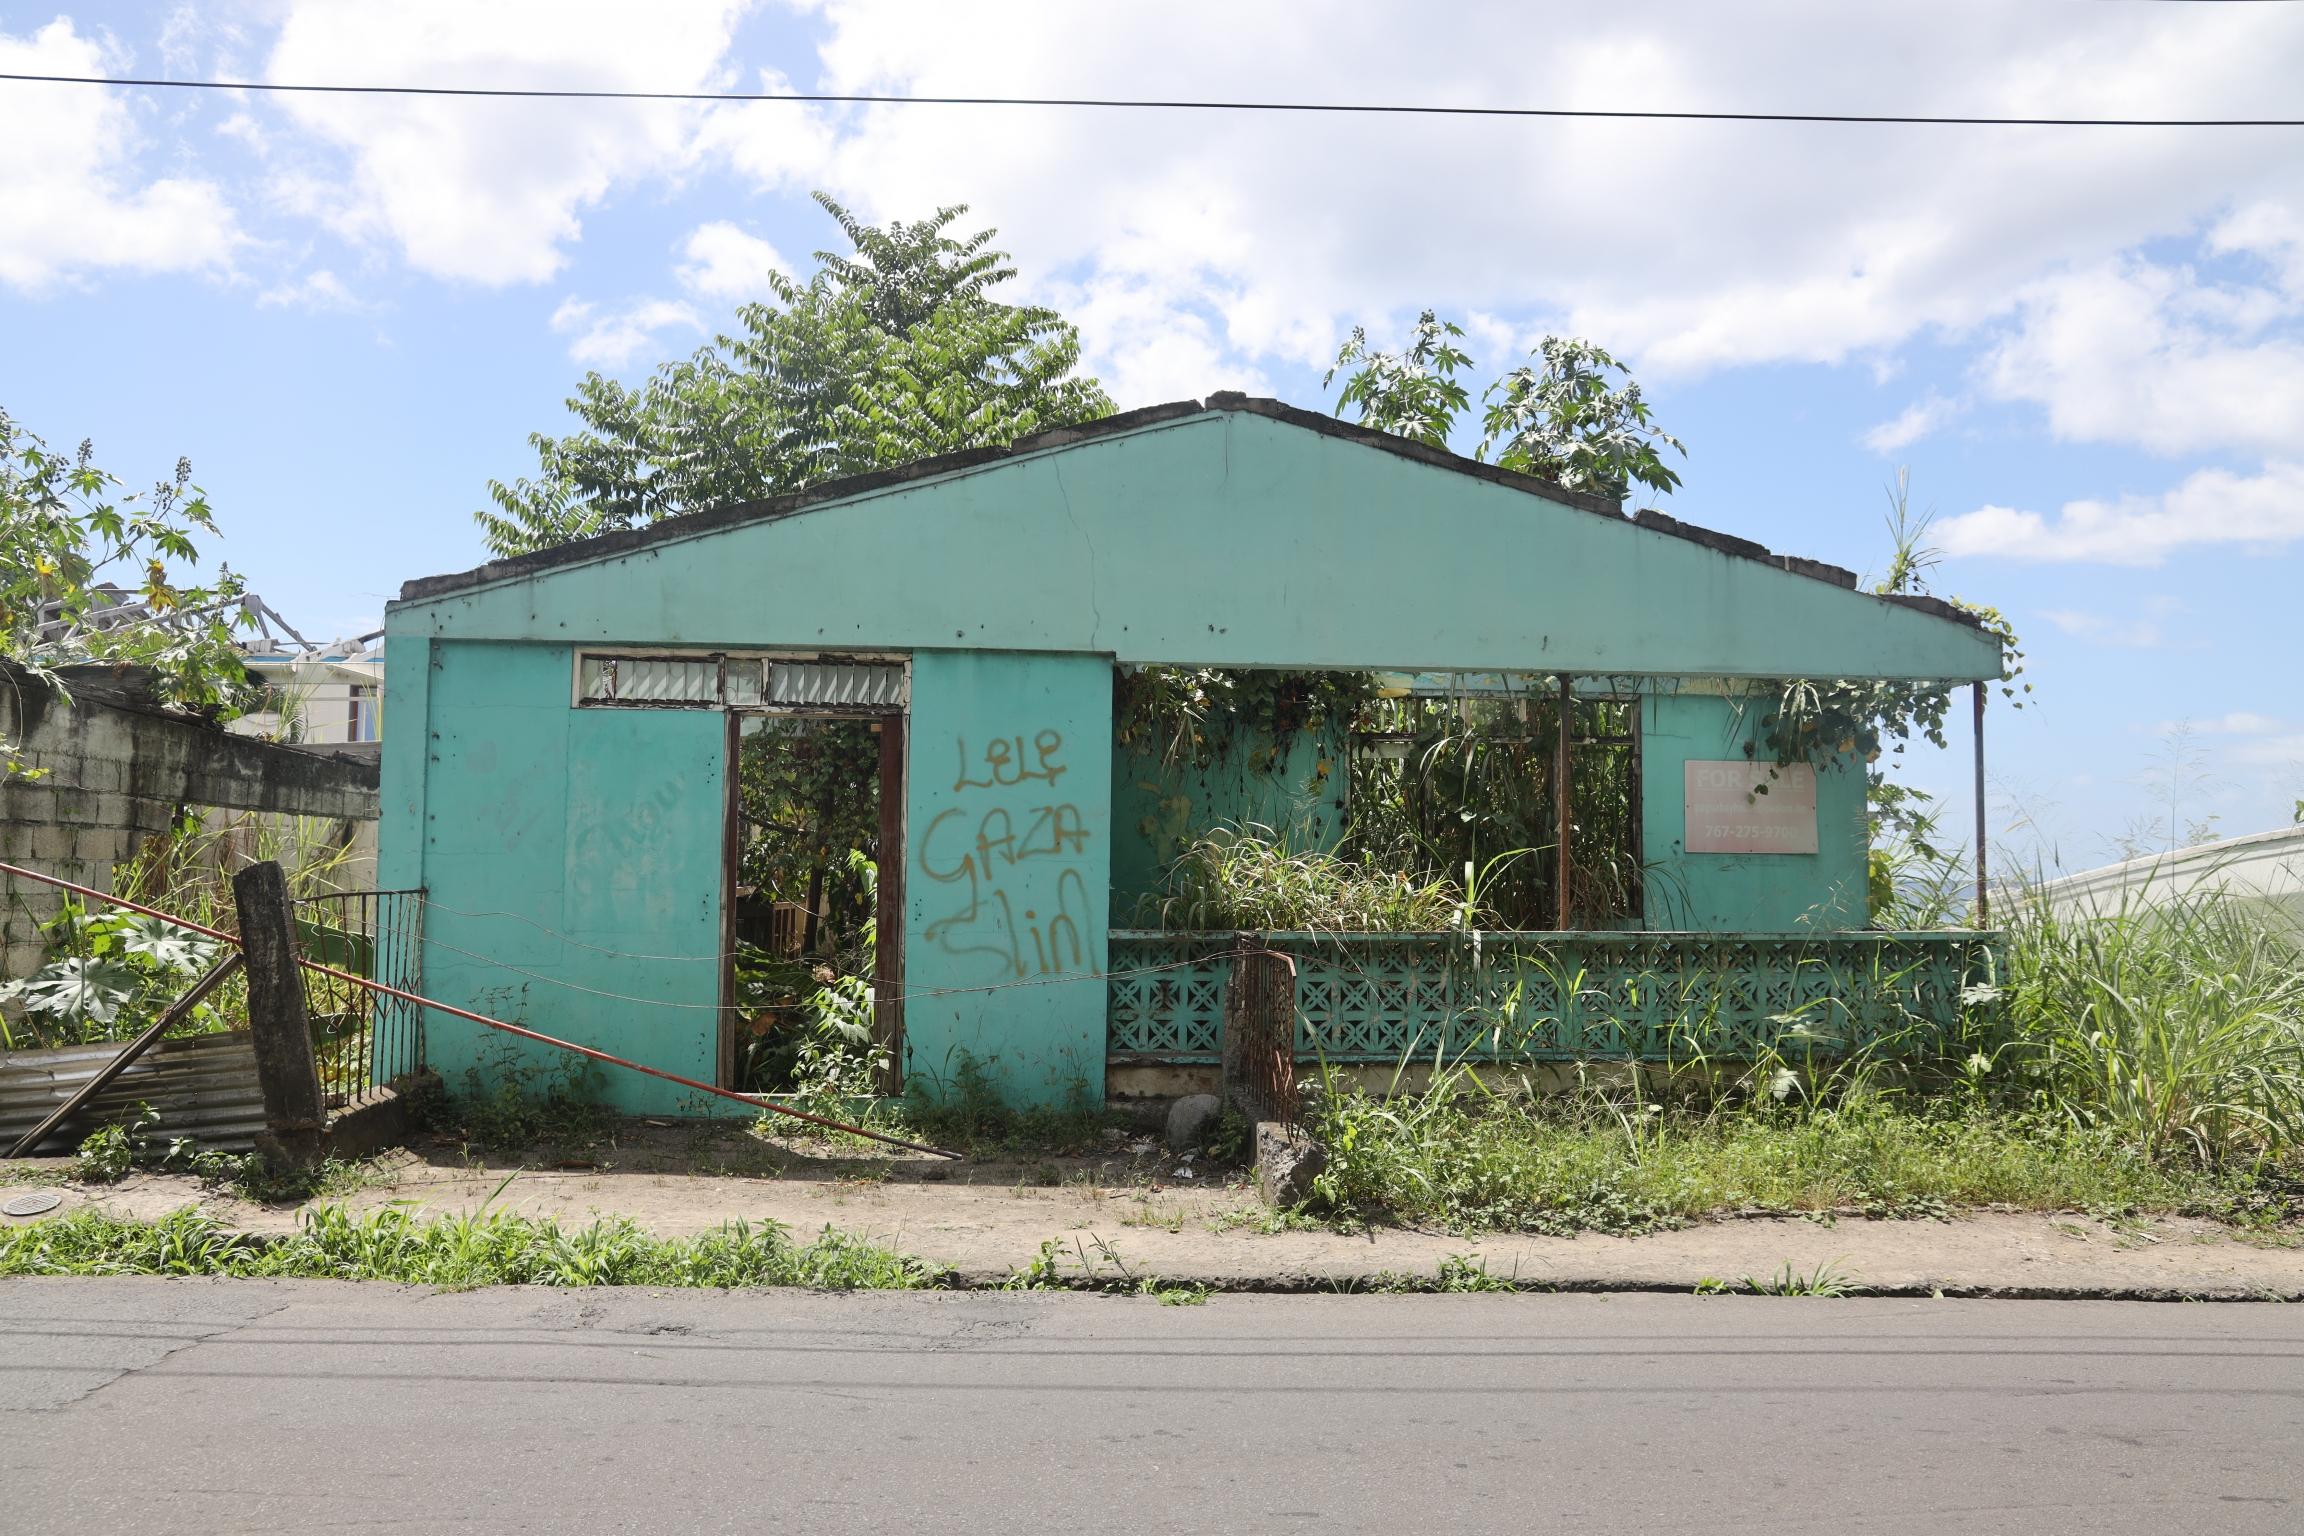 A home, damaged and abandoned, on the southwest coast of Dominica.